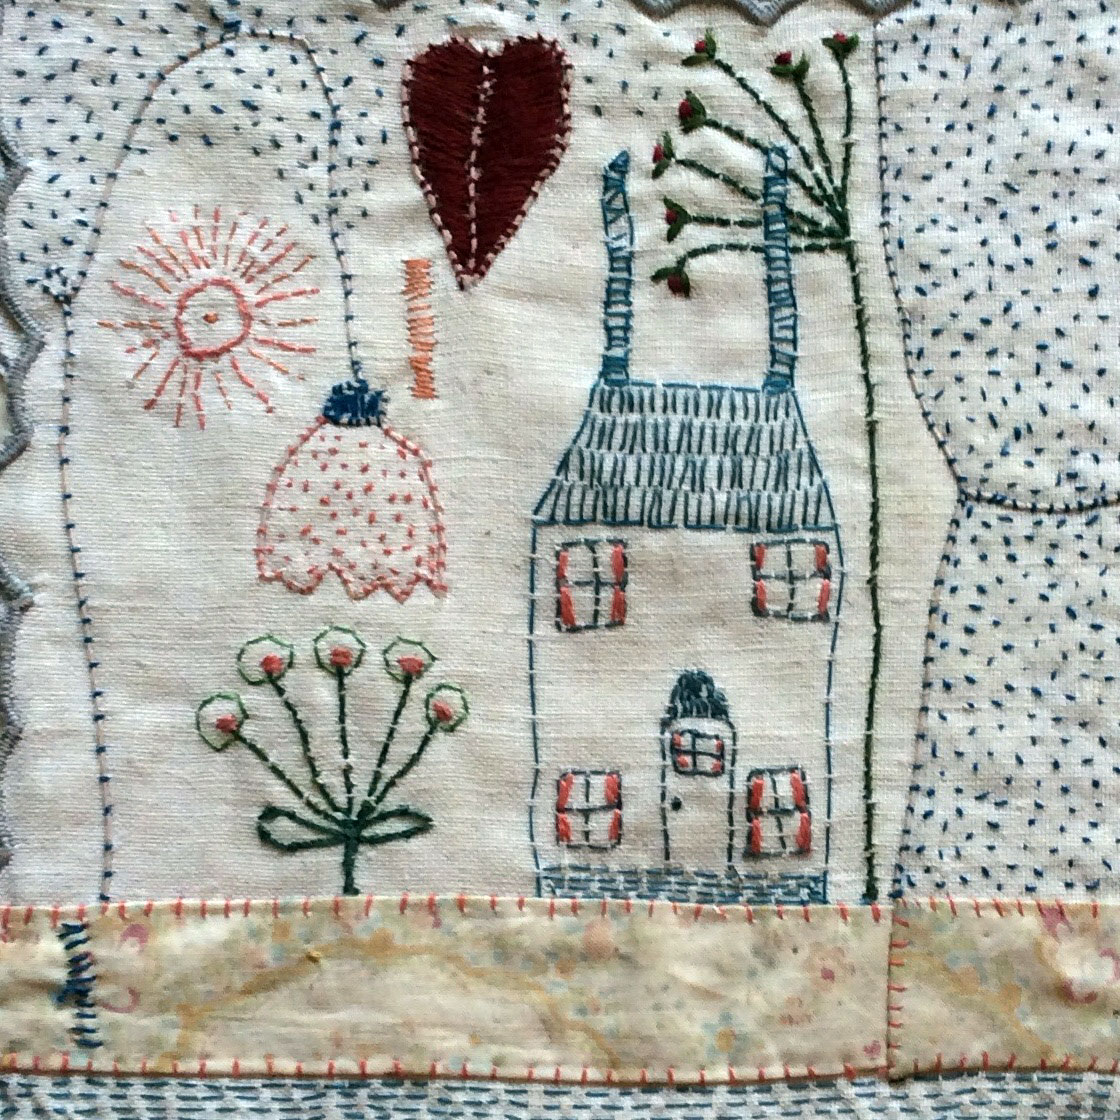 Jessie Chorley – Embroidery – Stitched Story Books